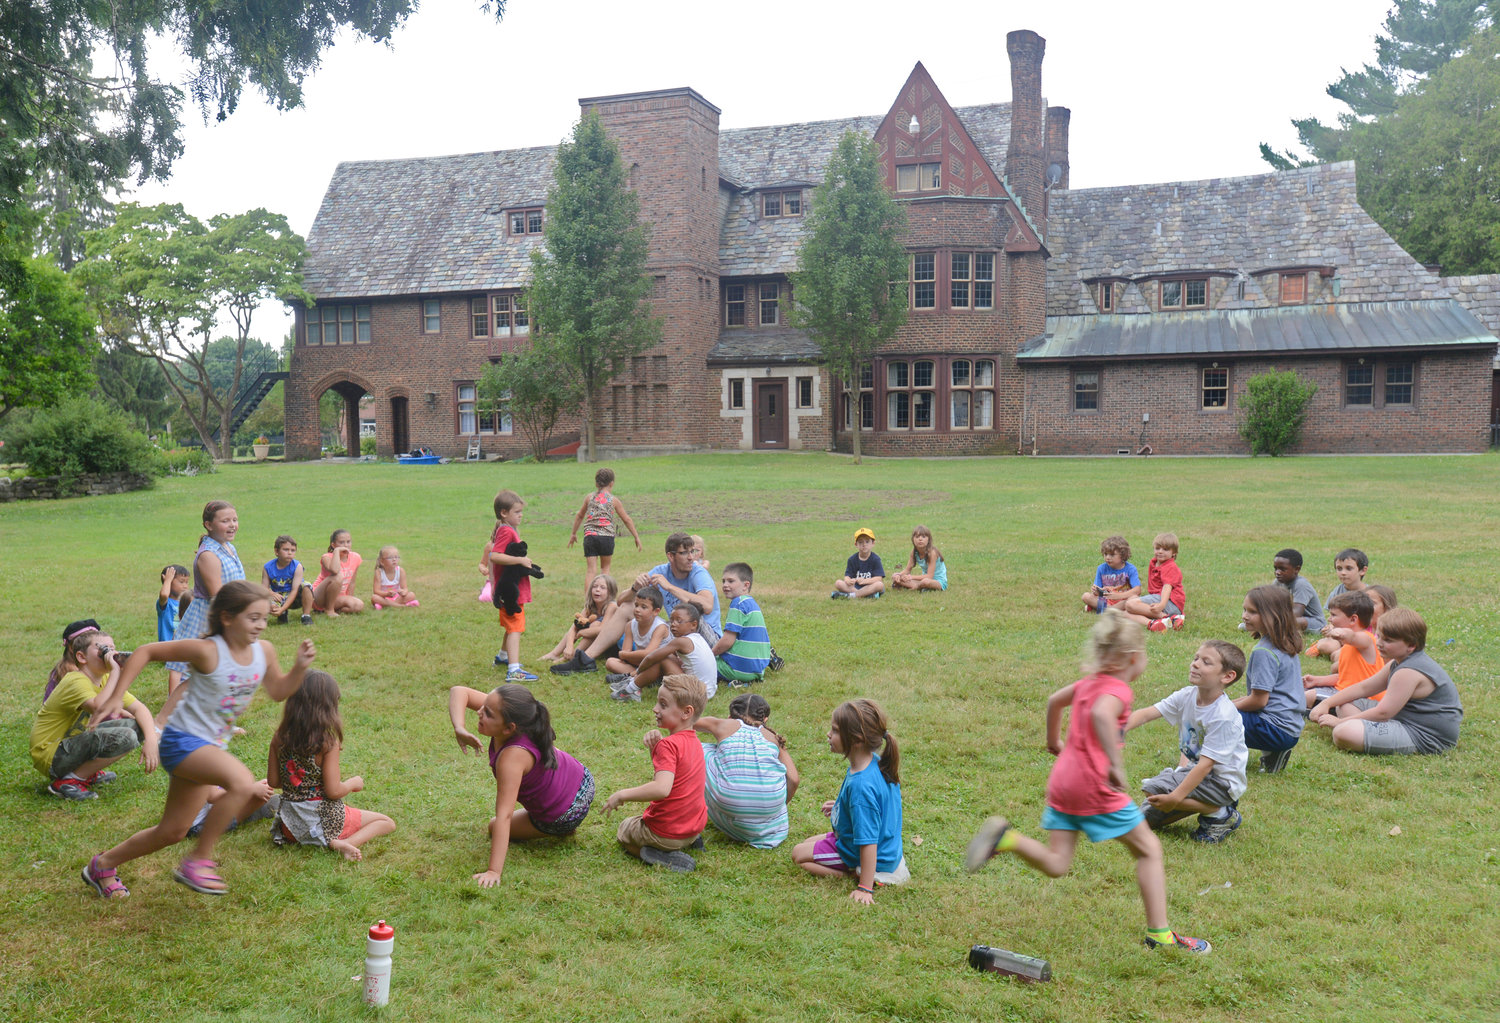 SUMMER CAMP — Participants in the Artletics Summer Camp program at the Rome Art & Community Center have some fun in the sun last year playing Duck Duck Goose.